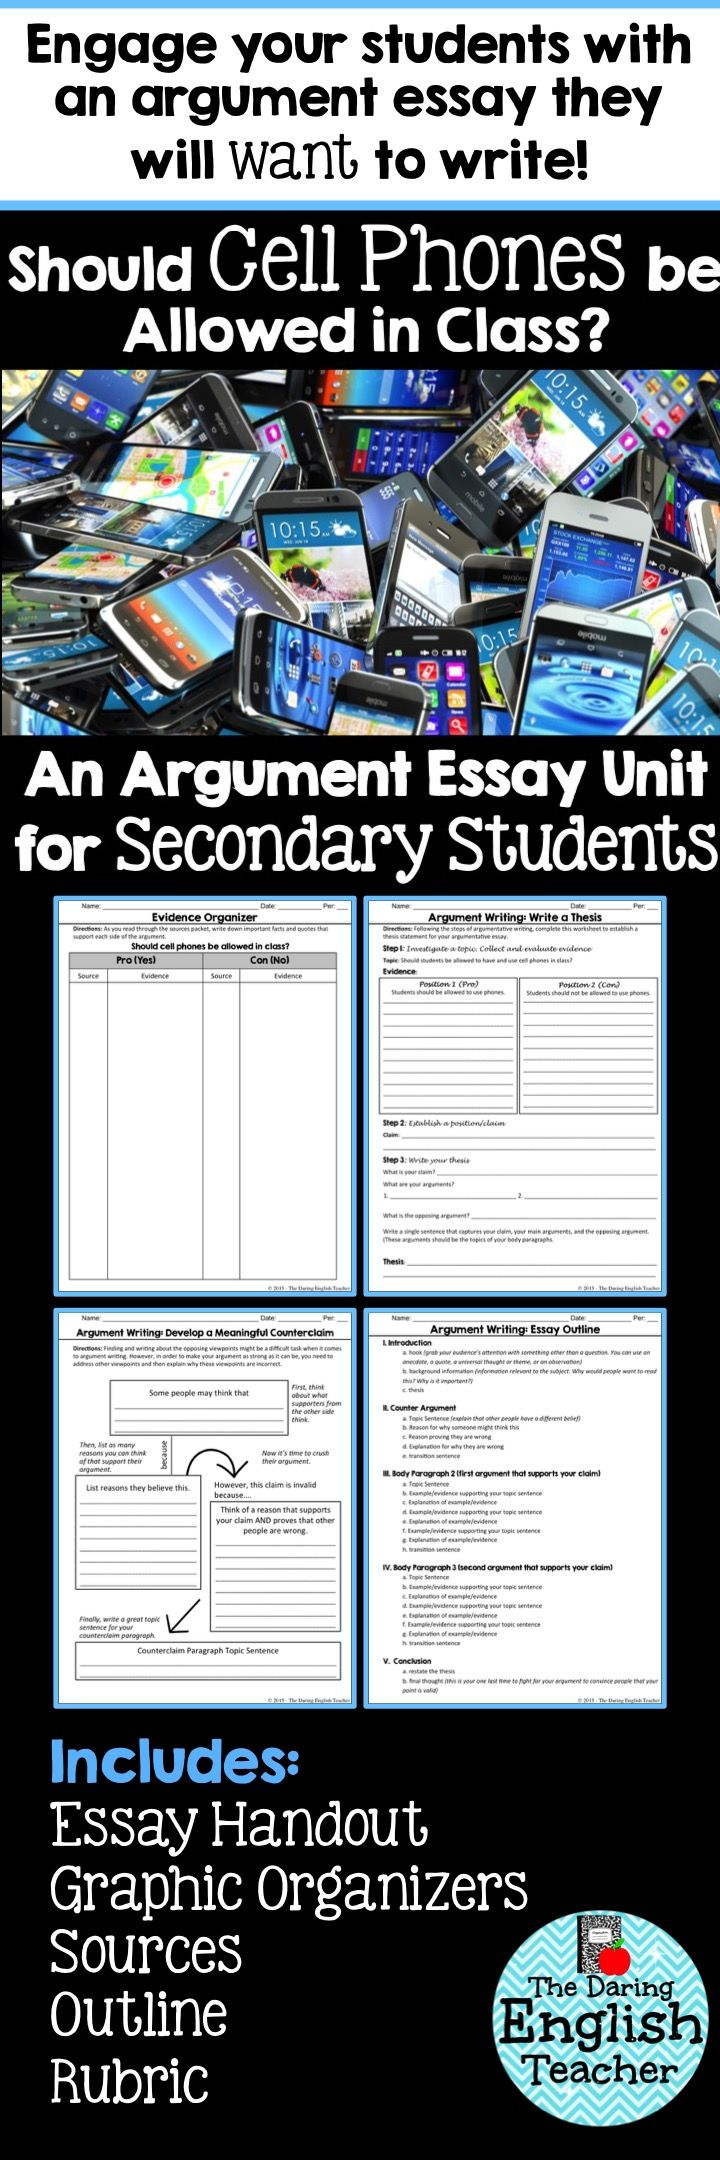 cell phone arguments essay custom paper service cell phone arguments essay